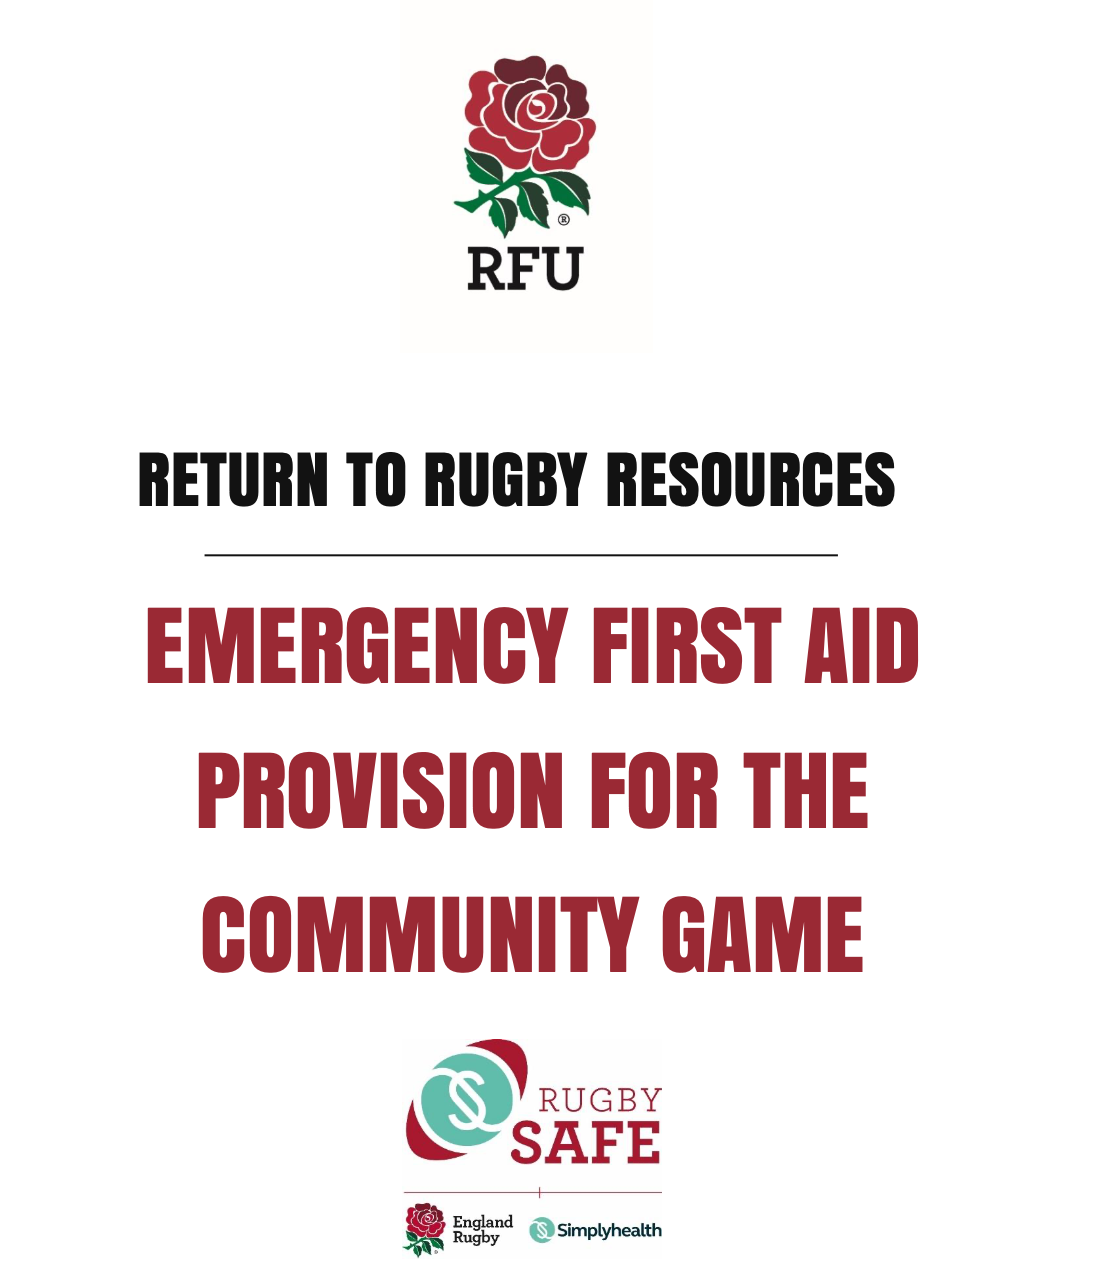 Emergency First Aid Provision for the Community Game